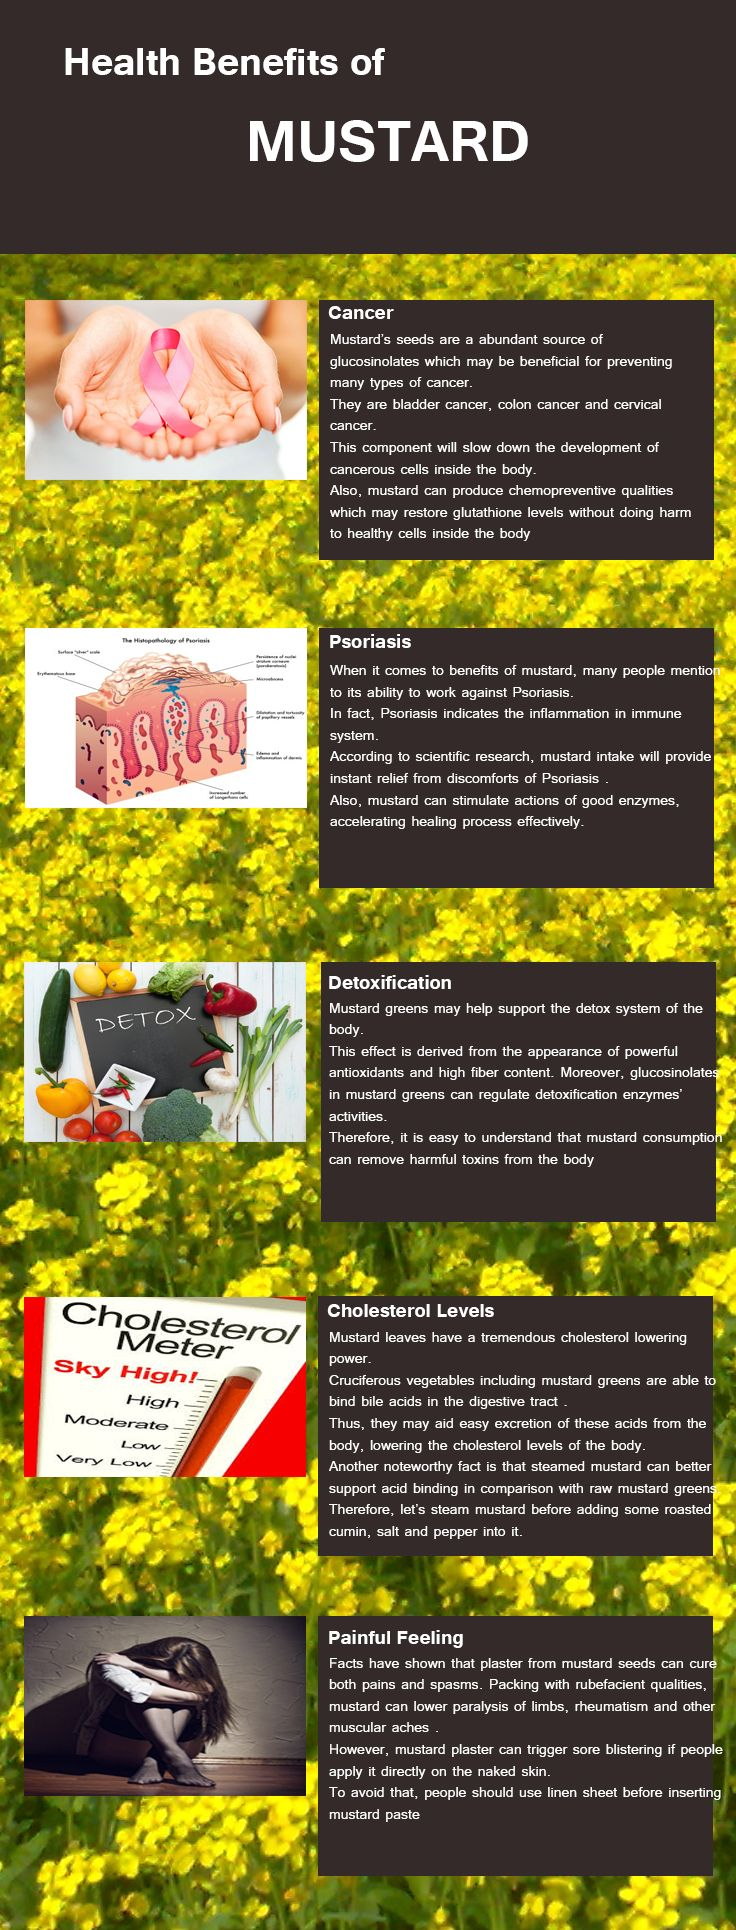 Mustard Benefits and Health uses